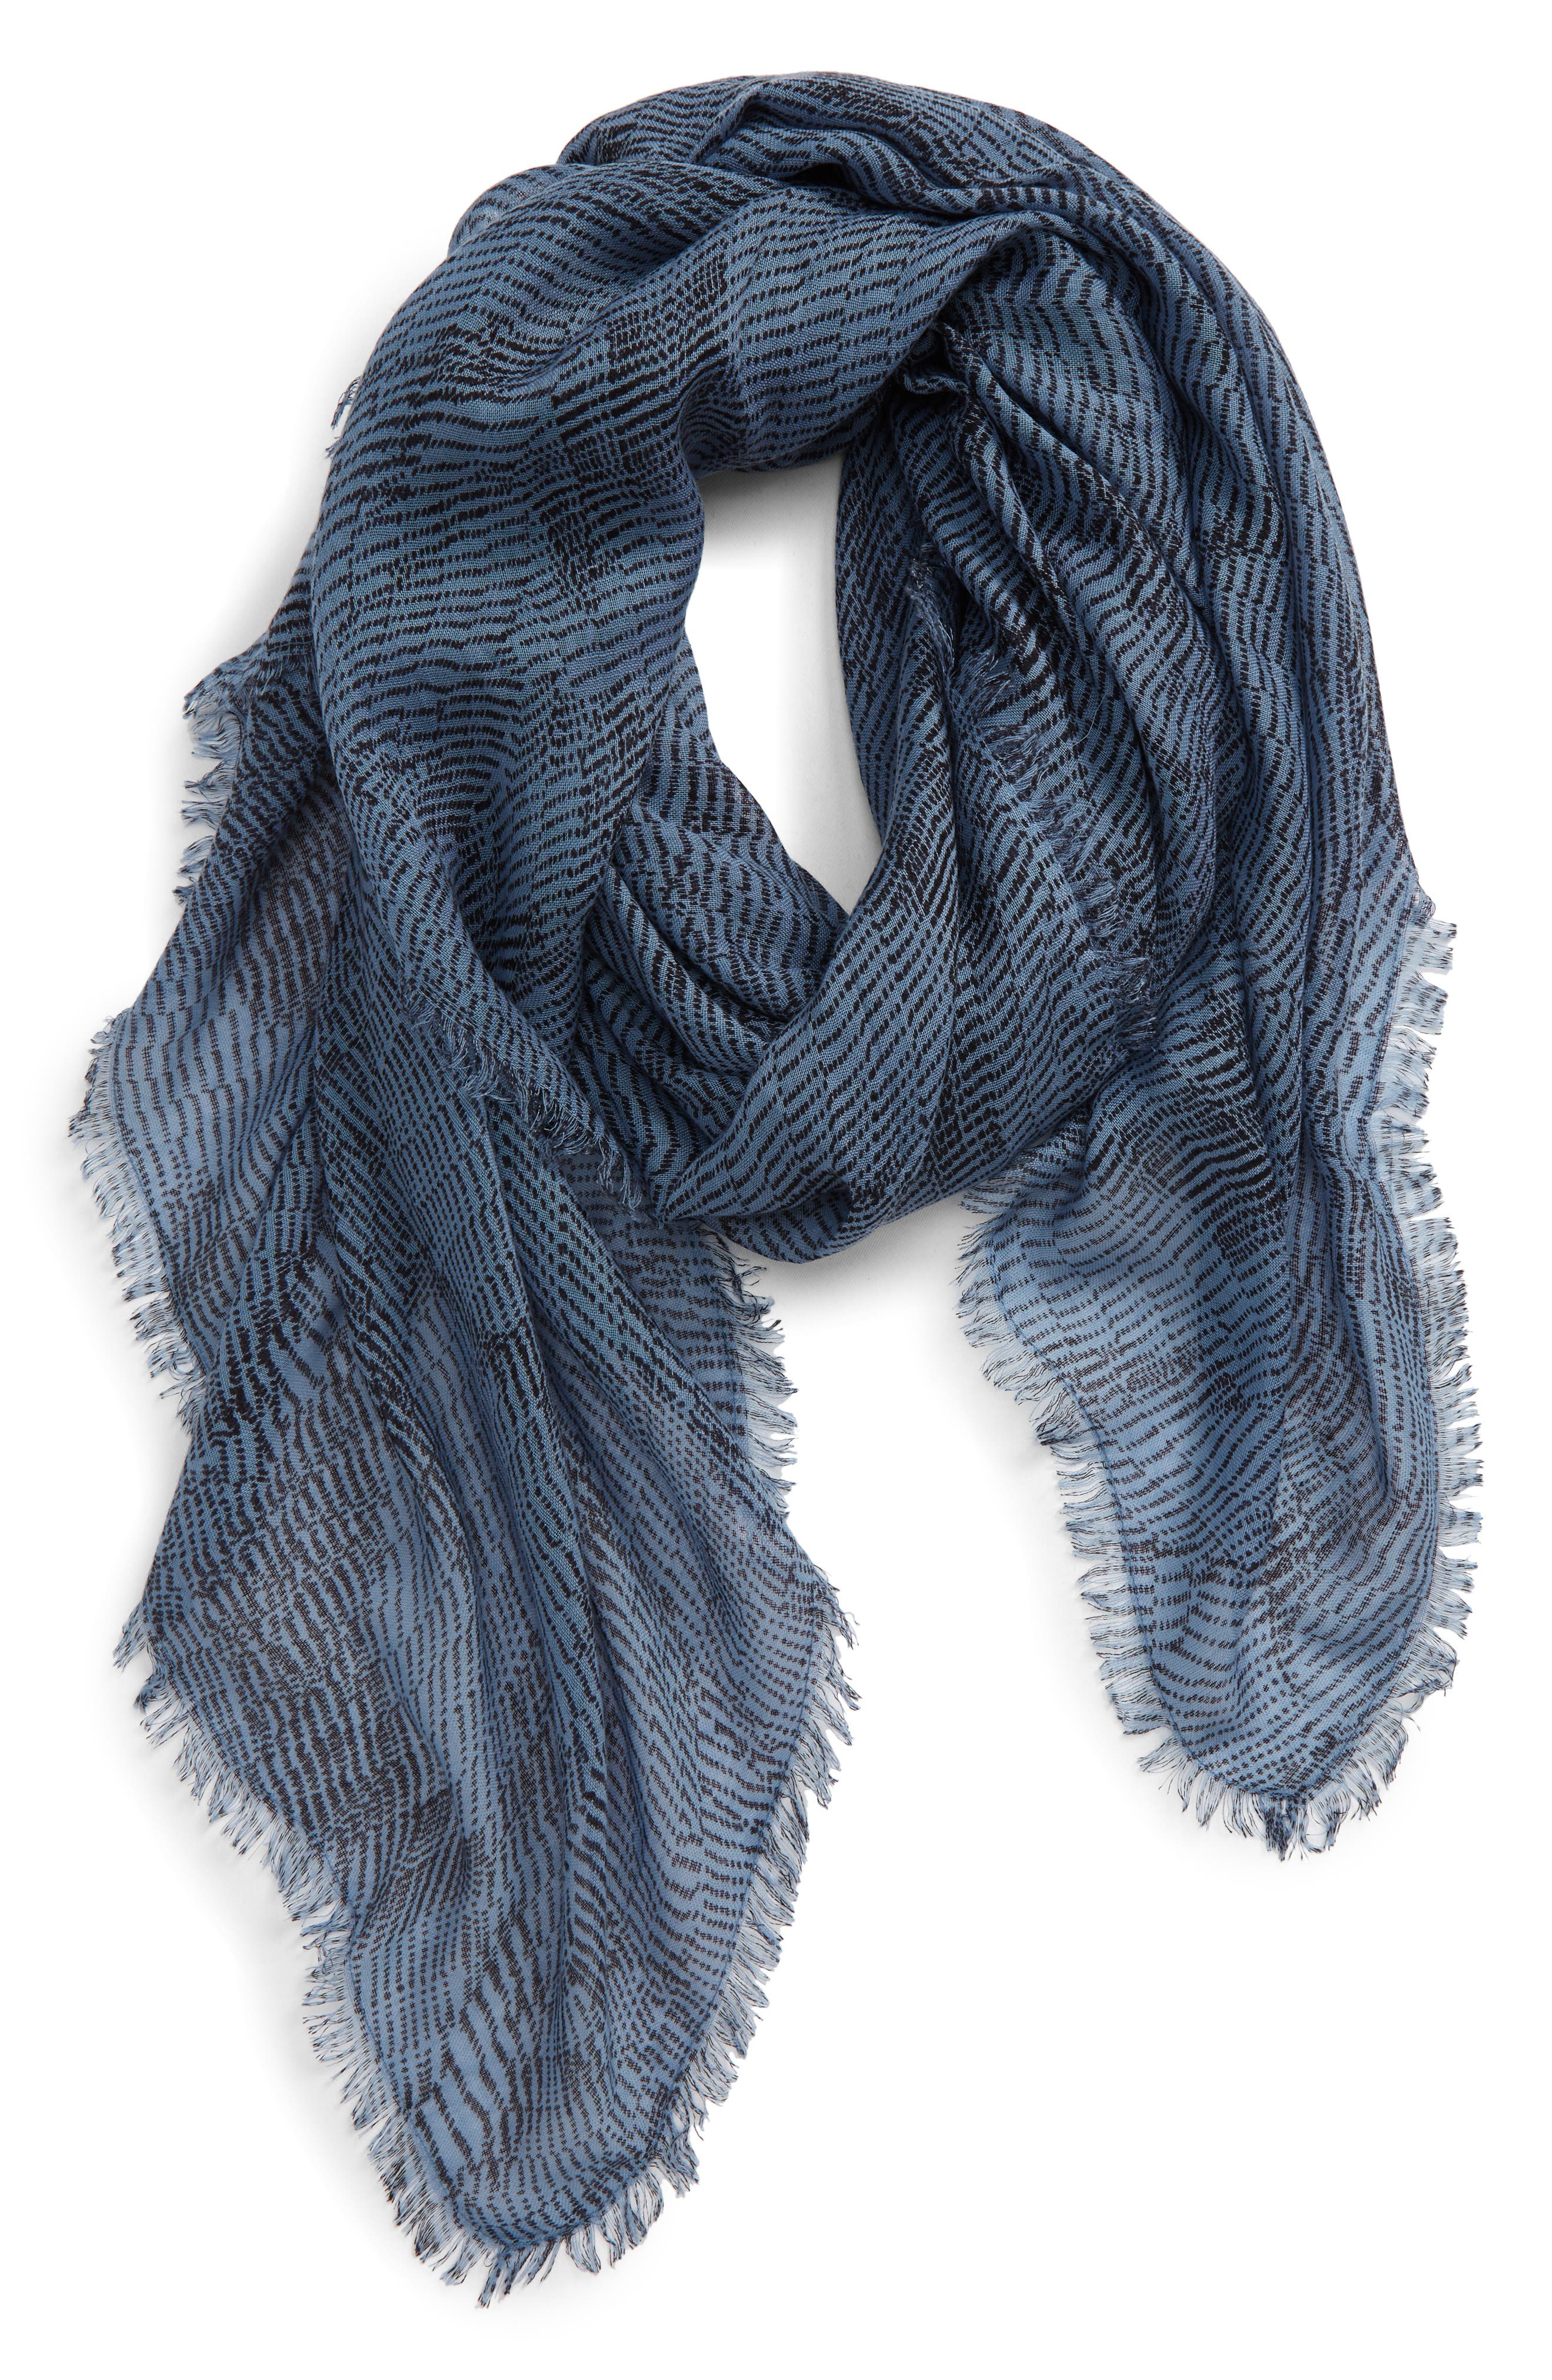 This feather-light square scarf with fringed trim features a print that makes a statement even when it\\\'s wrapped, tied or draped. When you buy Treasure & Bond, Nordstrom will donate 2.5% of net sales to organizations that work to empower youth. Style Name: Treasure & Bond Print Square Scarf. Style Number: 6017719. Available in stores.